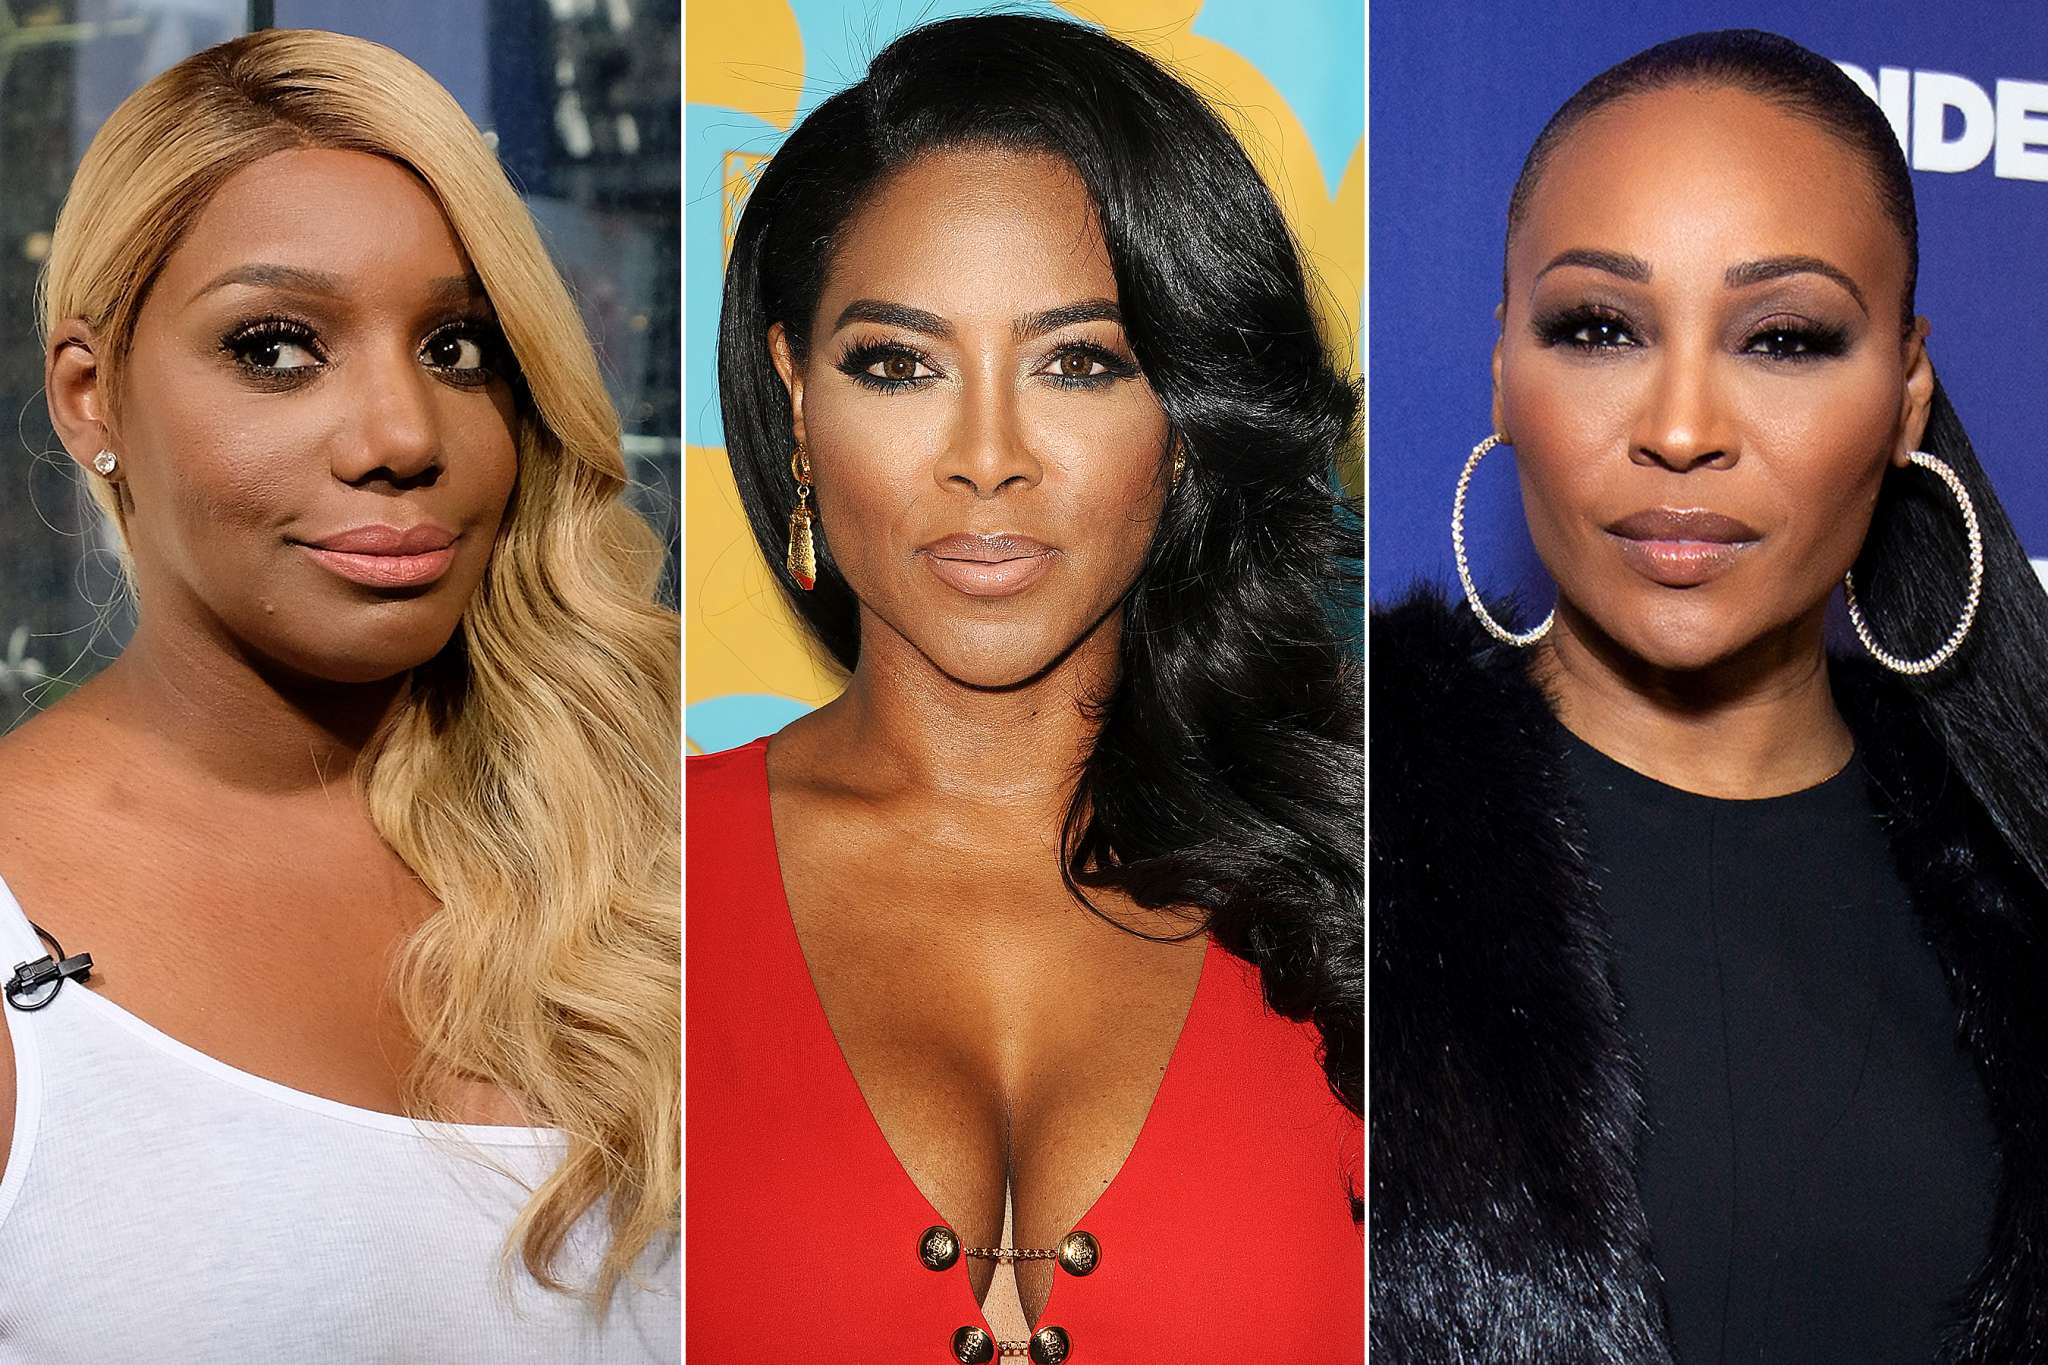 rhoa-reunion-3rd-part-nene-will-not-forgive-cynthia-bailey-following-the-kenya-moore-drama